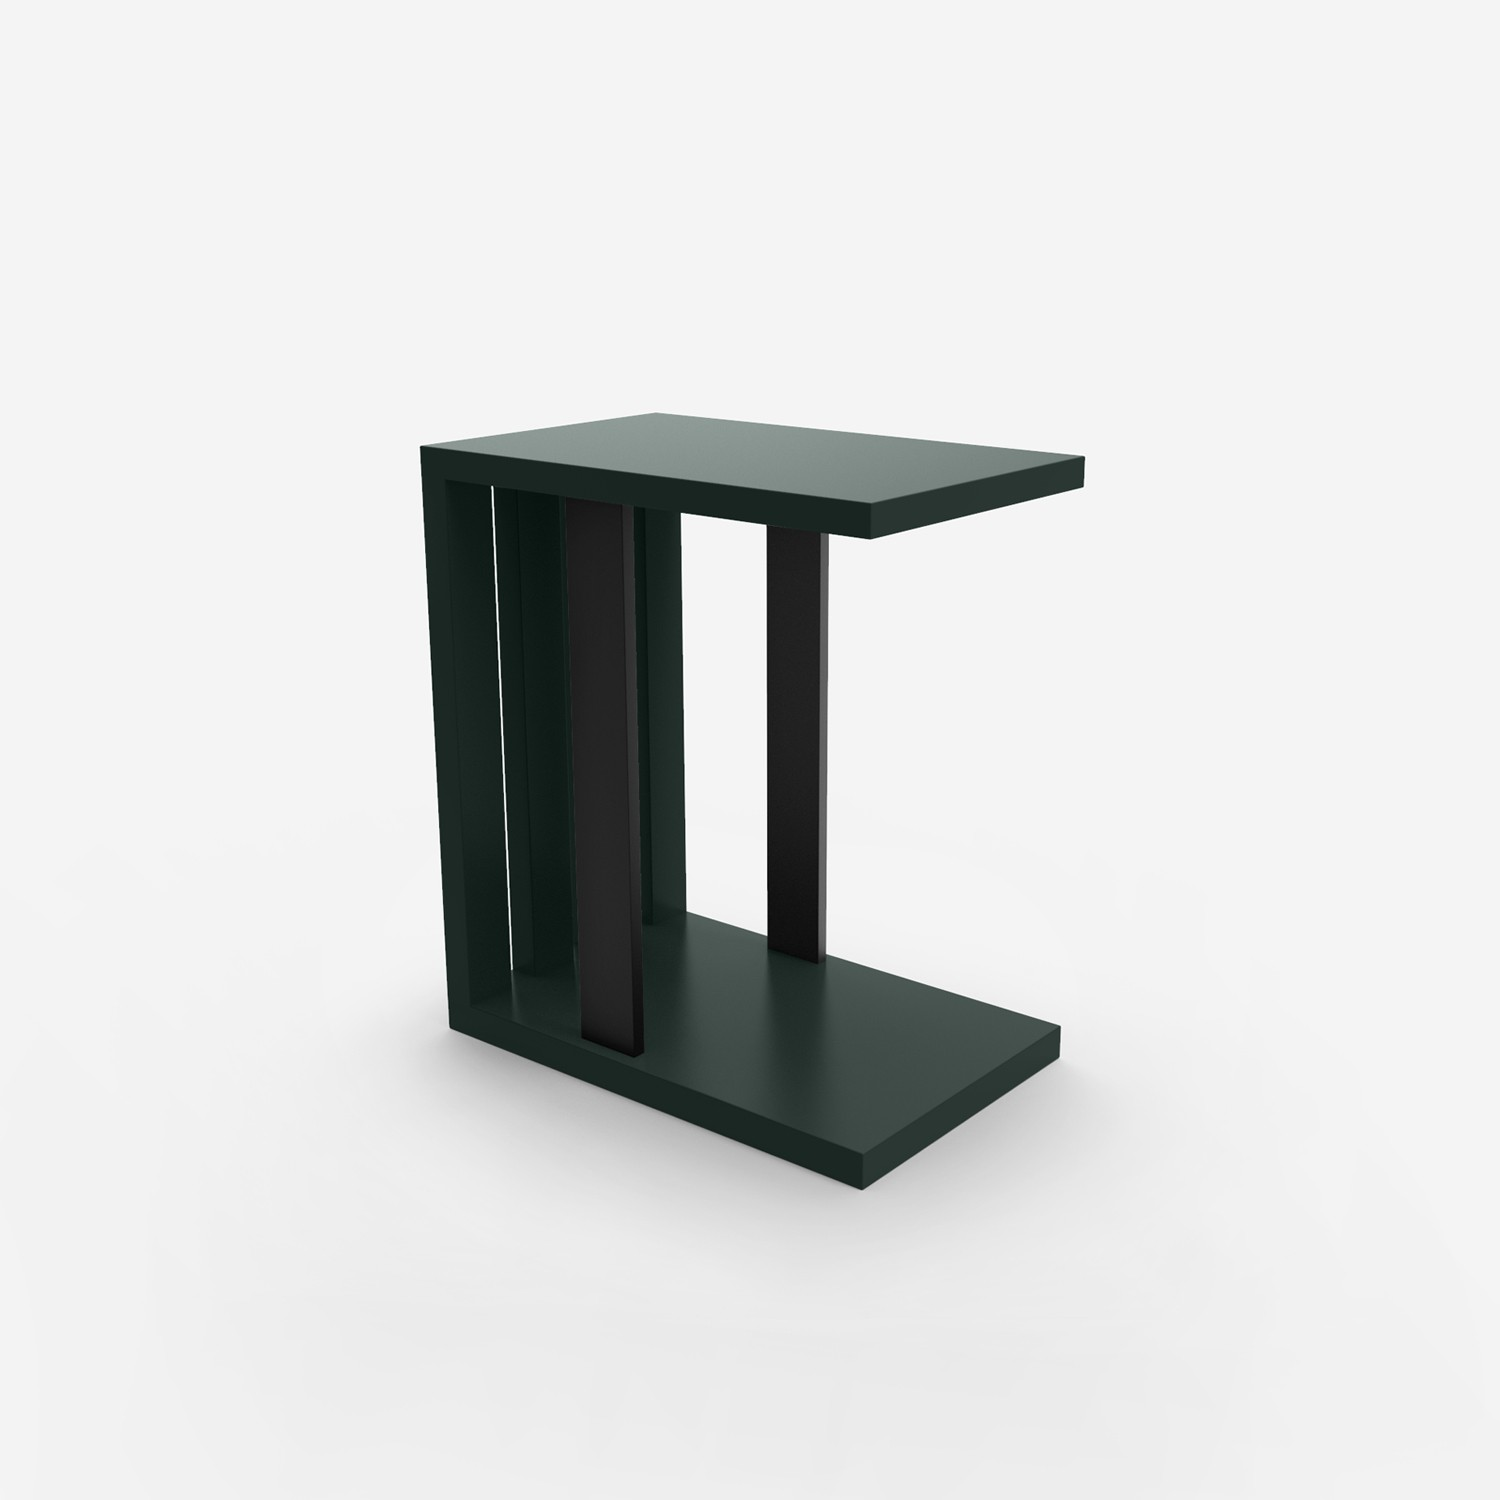 Slatted To Serve Side Table - Forest Green